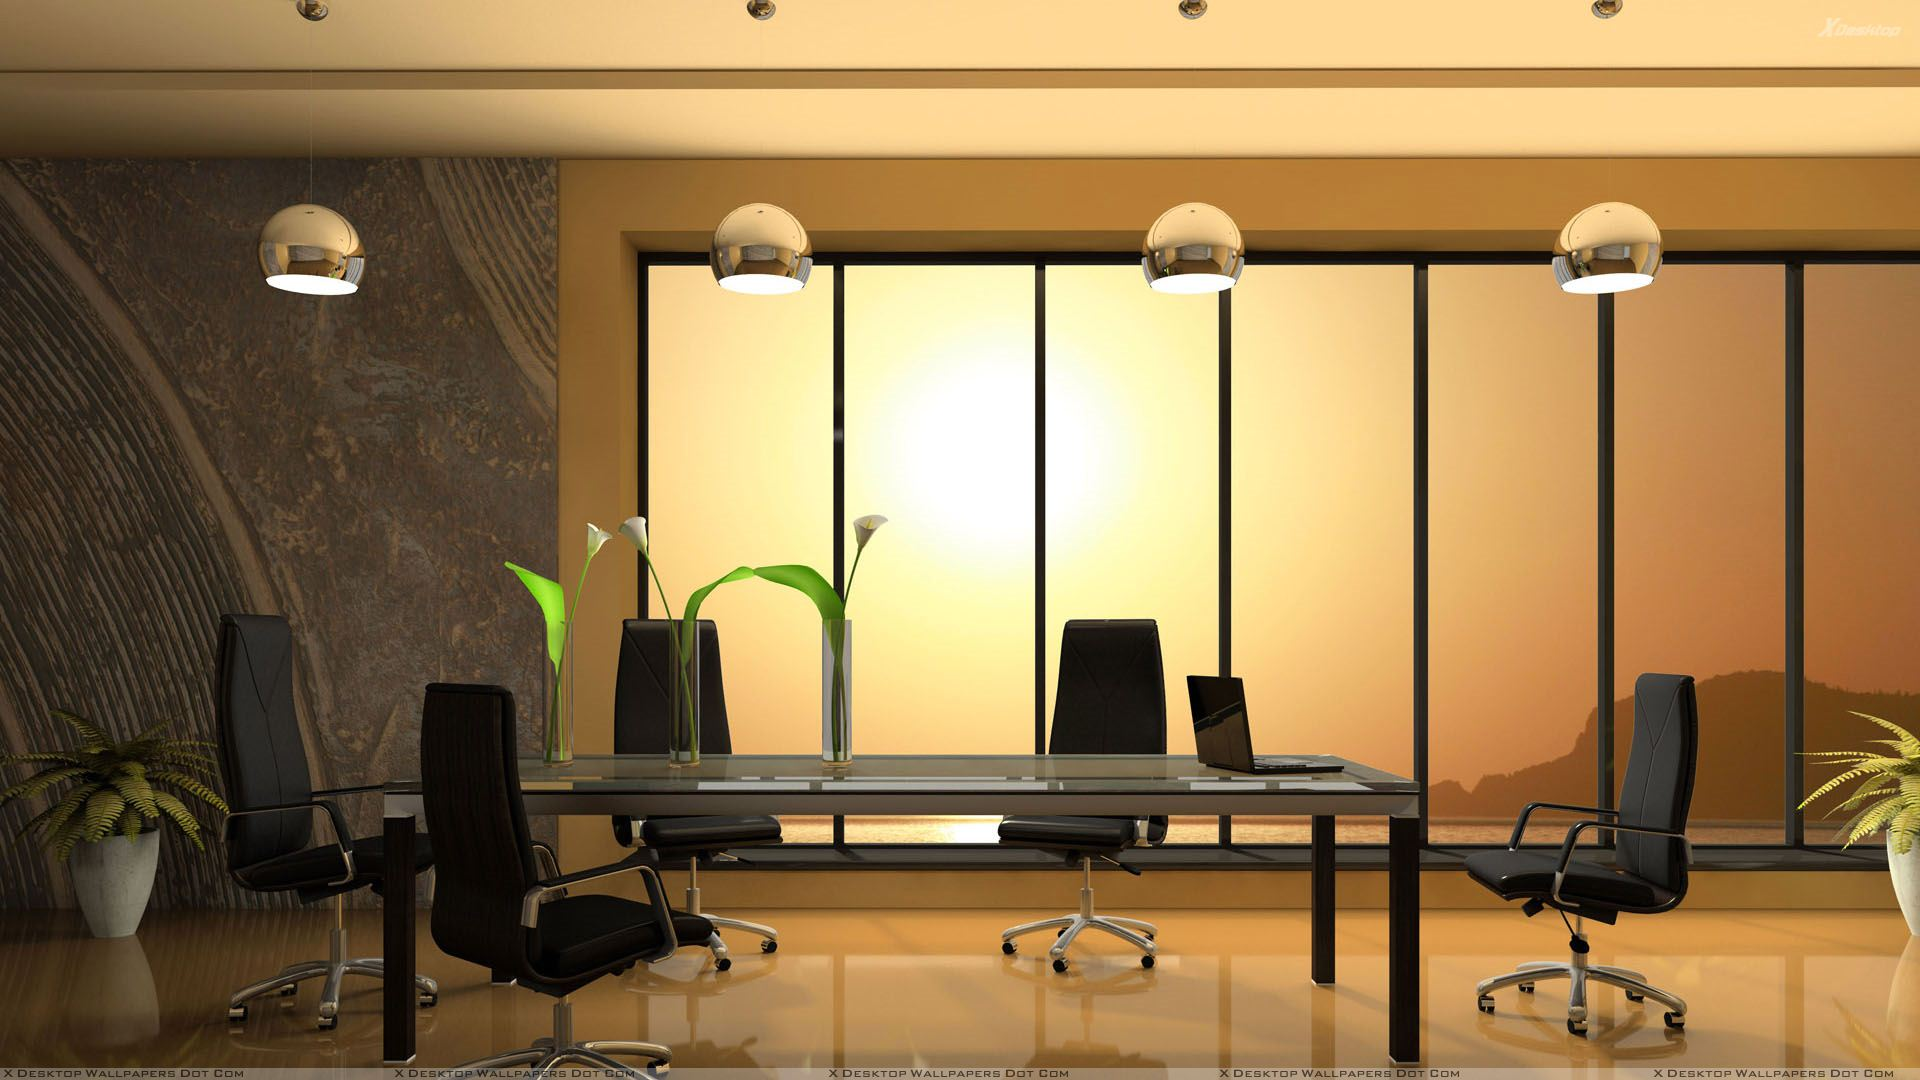 Meeting room in office wallpaper for Cool office rooms